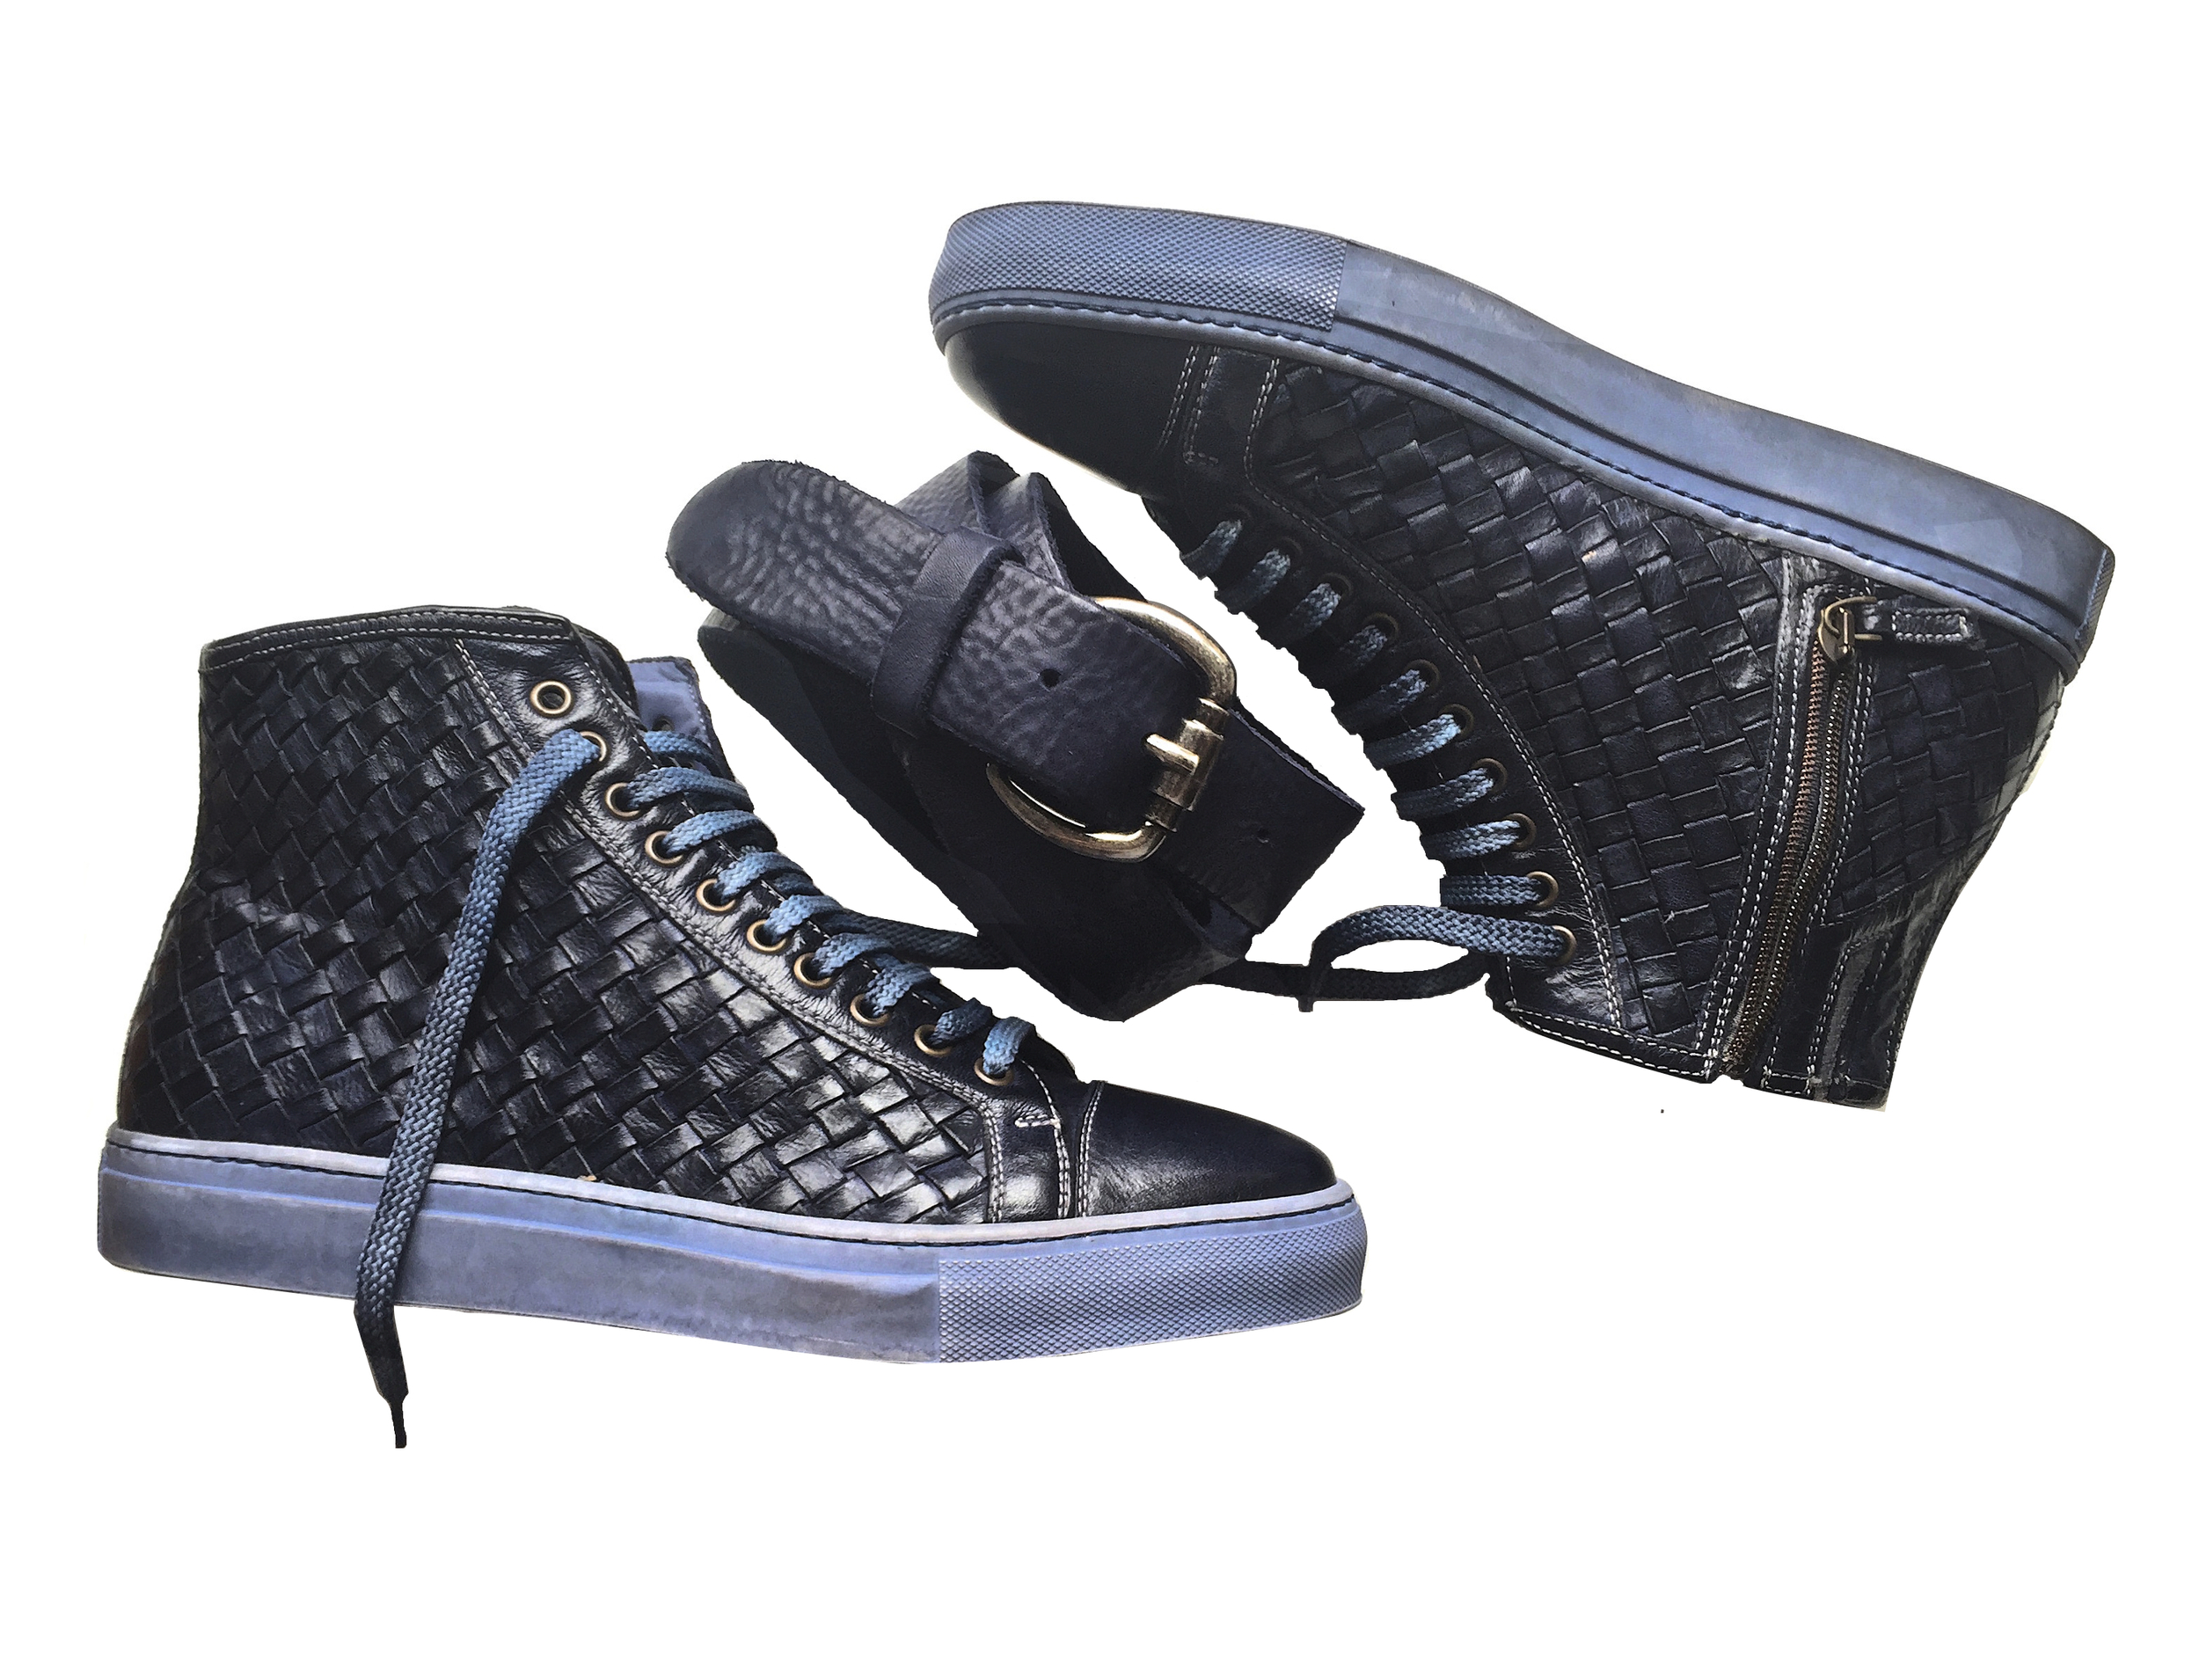 Style # 9996: Blue  Dip-Dyed Woven Buffalo Calf Leather High-Top  Sizes available :  7 to 14 US, including half sizes; 15 to 18 US, full sizes only